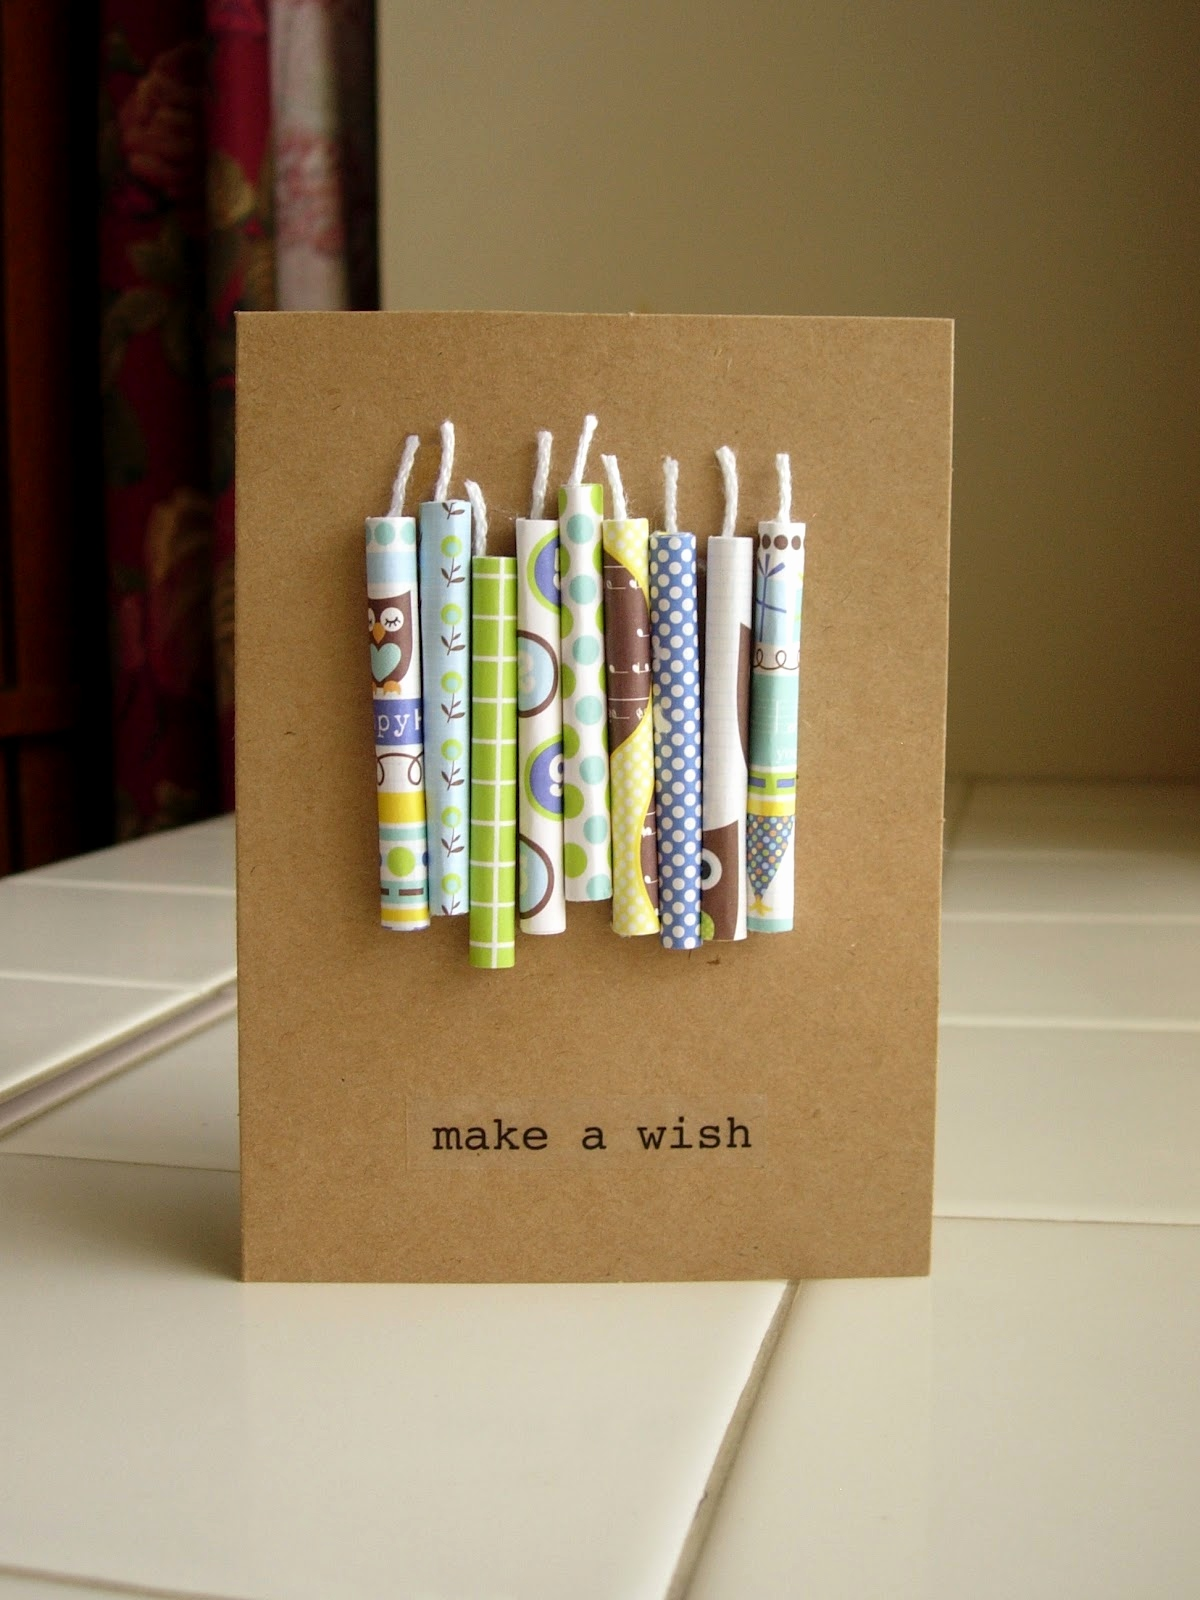 birthday card making ideas pinterest ; pinterest-birthday-card-making-ideas-luxury-birthday-candles-card-rolled-up-scrapbook-paper-and-string-so-of-pinterest-birthday-card-making-ideas